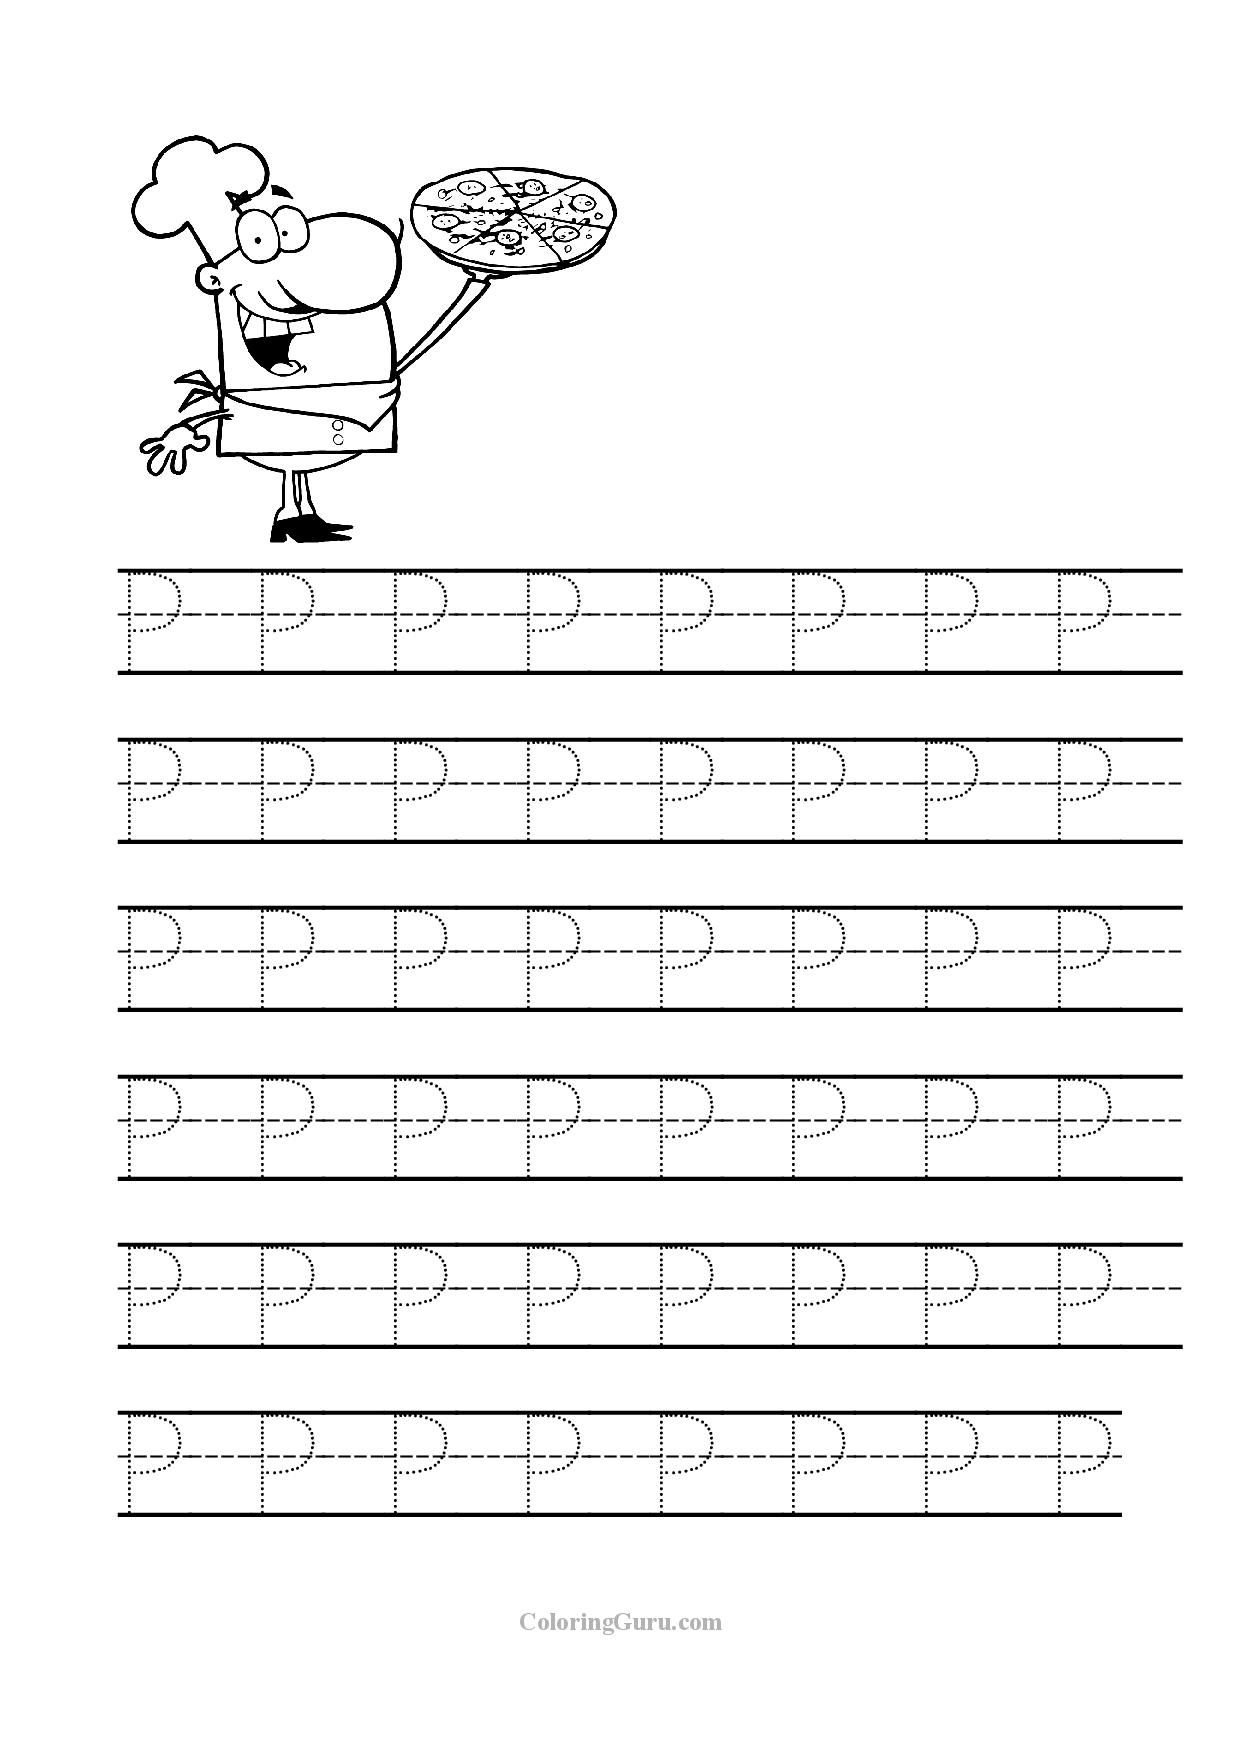 Free Printable Tracing Letter P Worksheets For Preschool   Tracing - Letter P Puzzle Printable